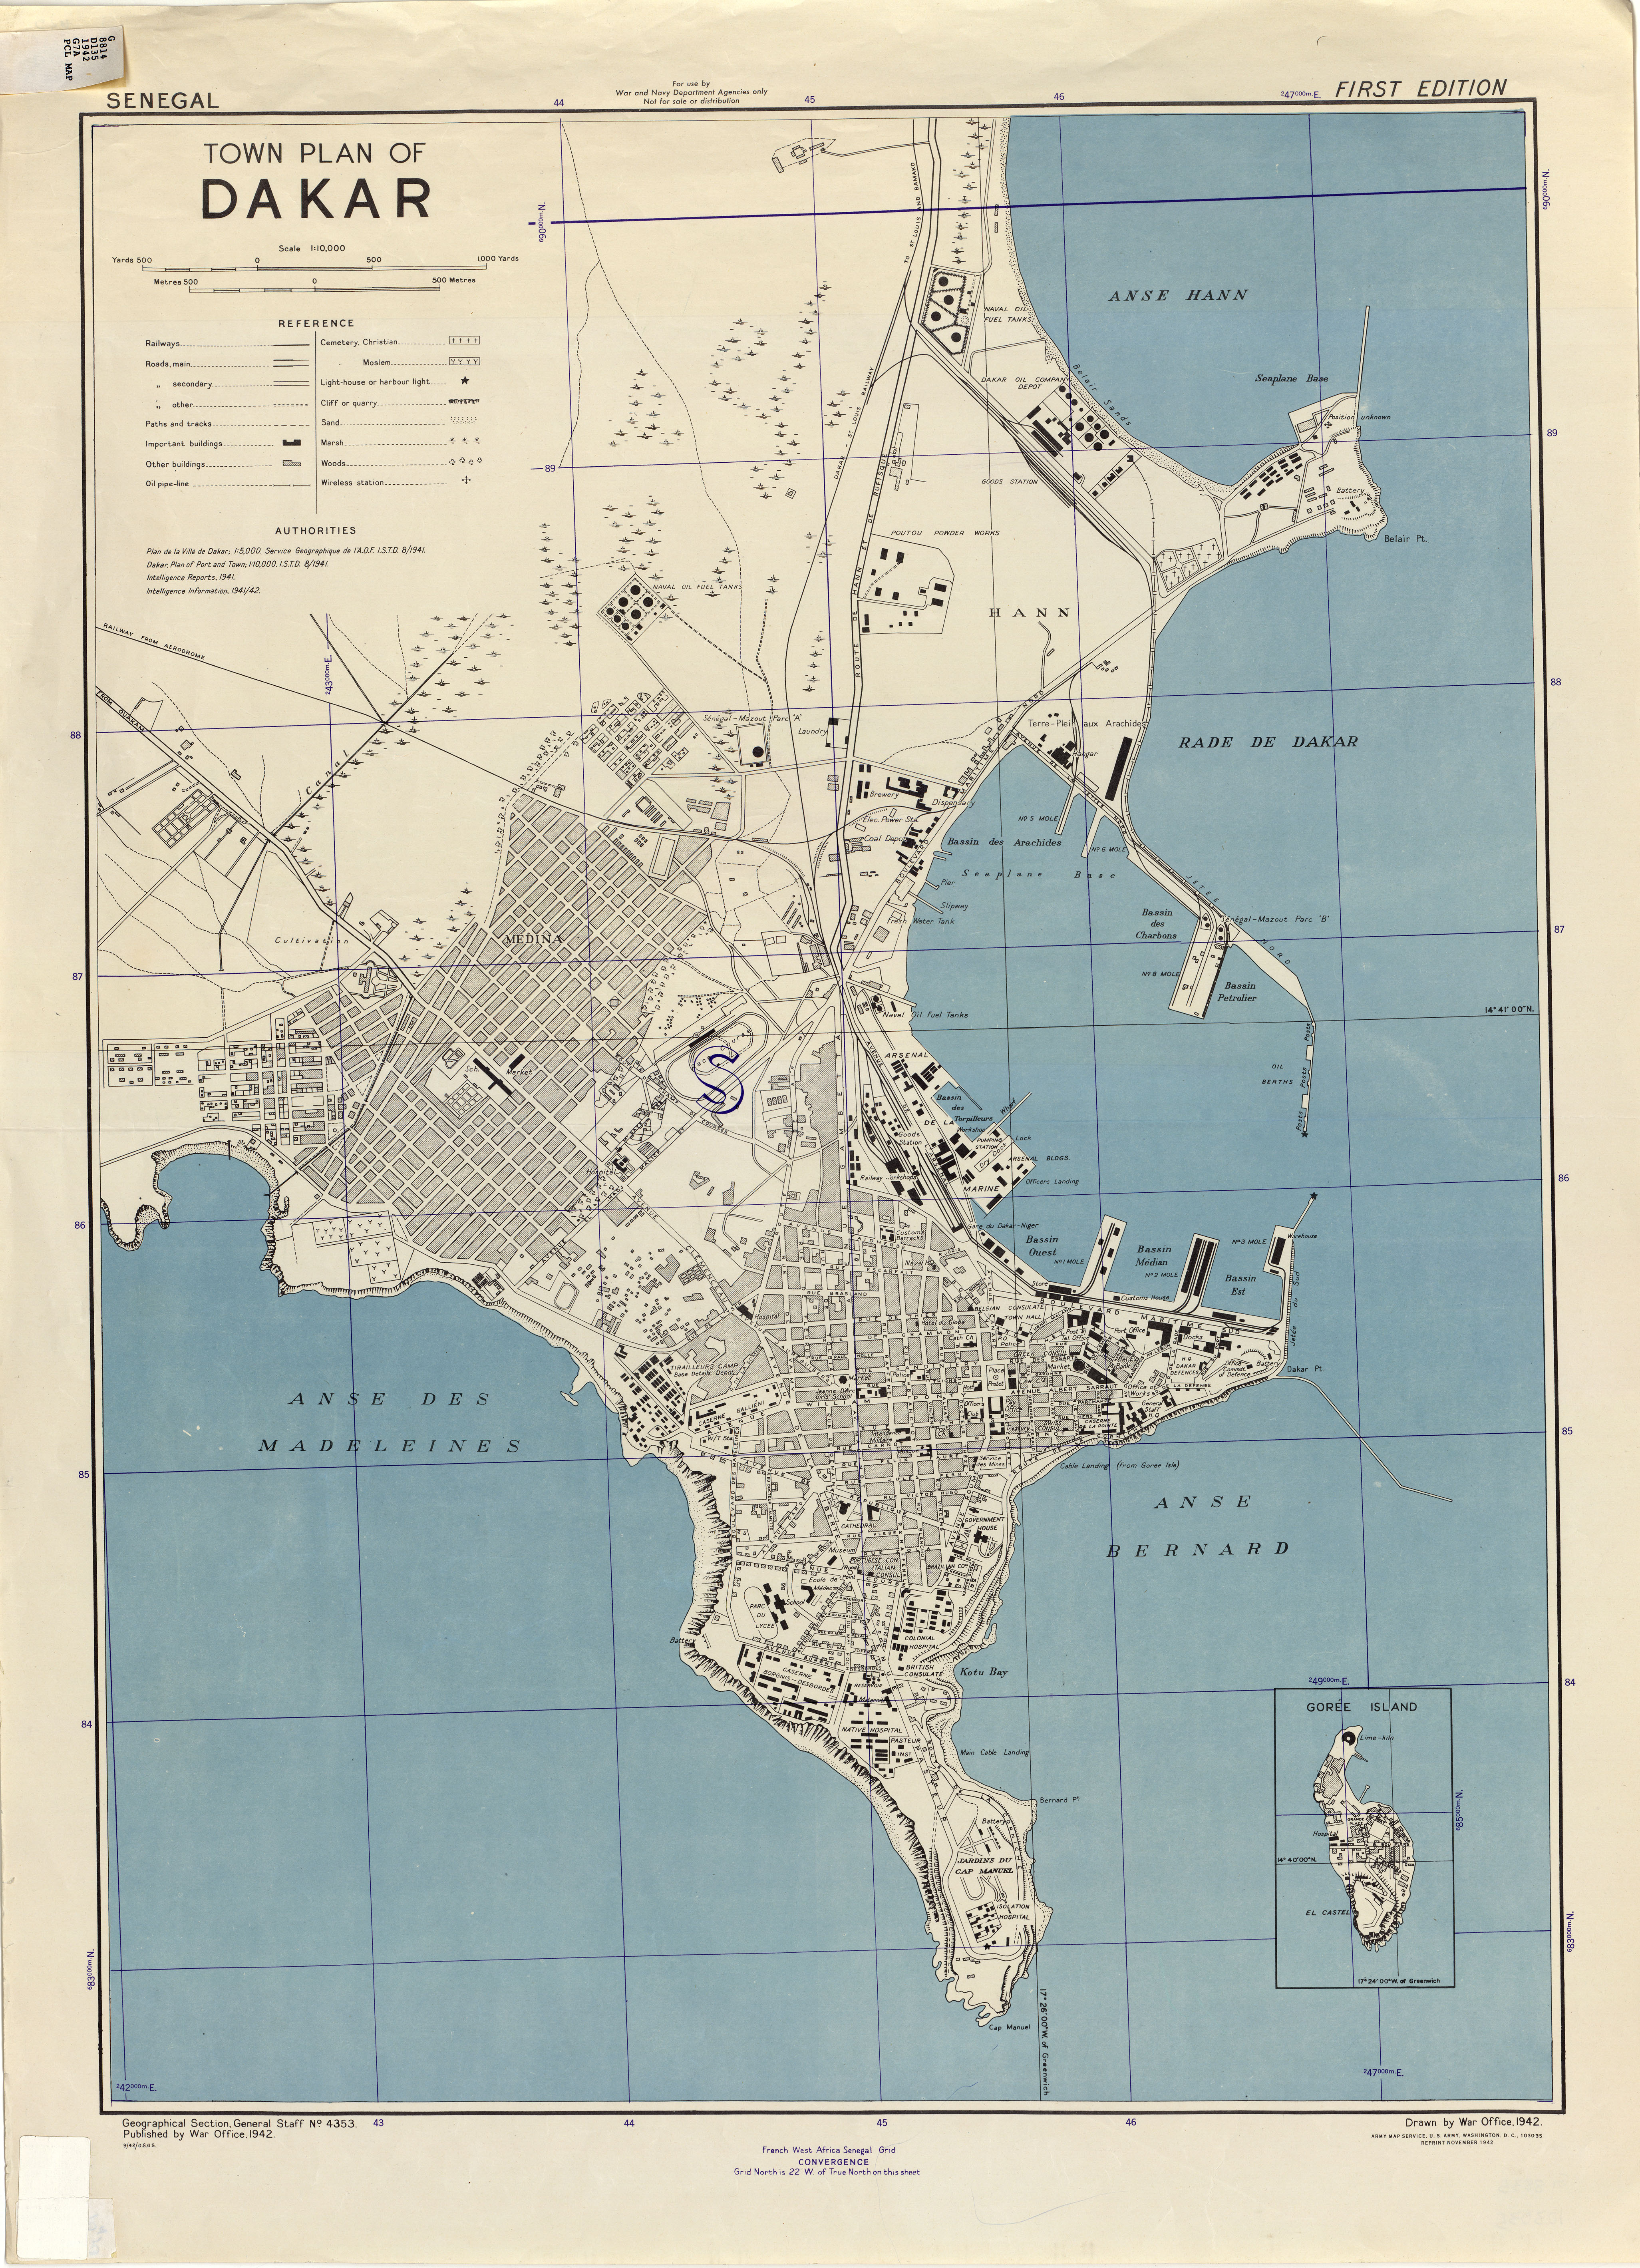 Senegal Maps - Perry-Castañeda Map Collection - UT Liry Online on